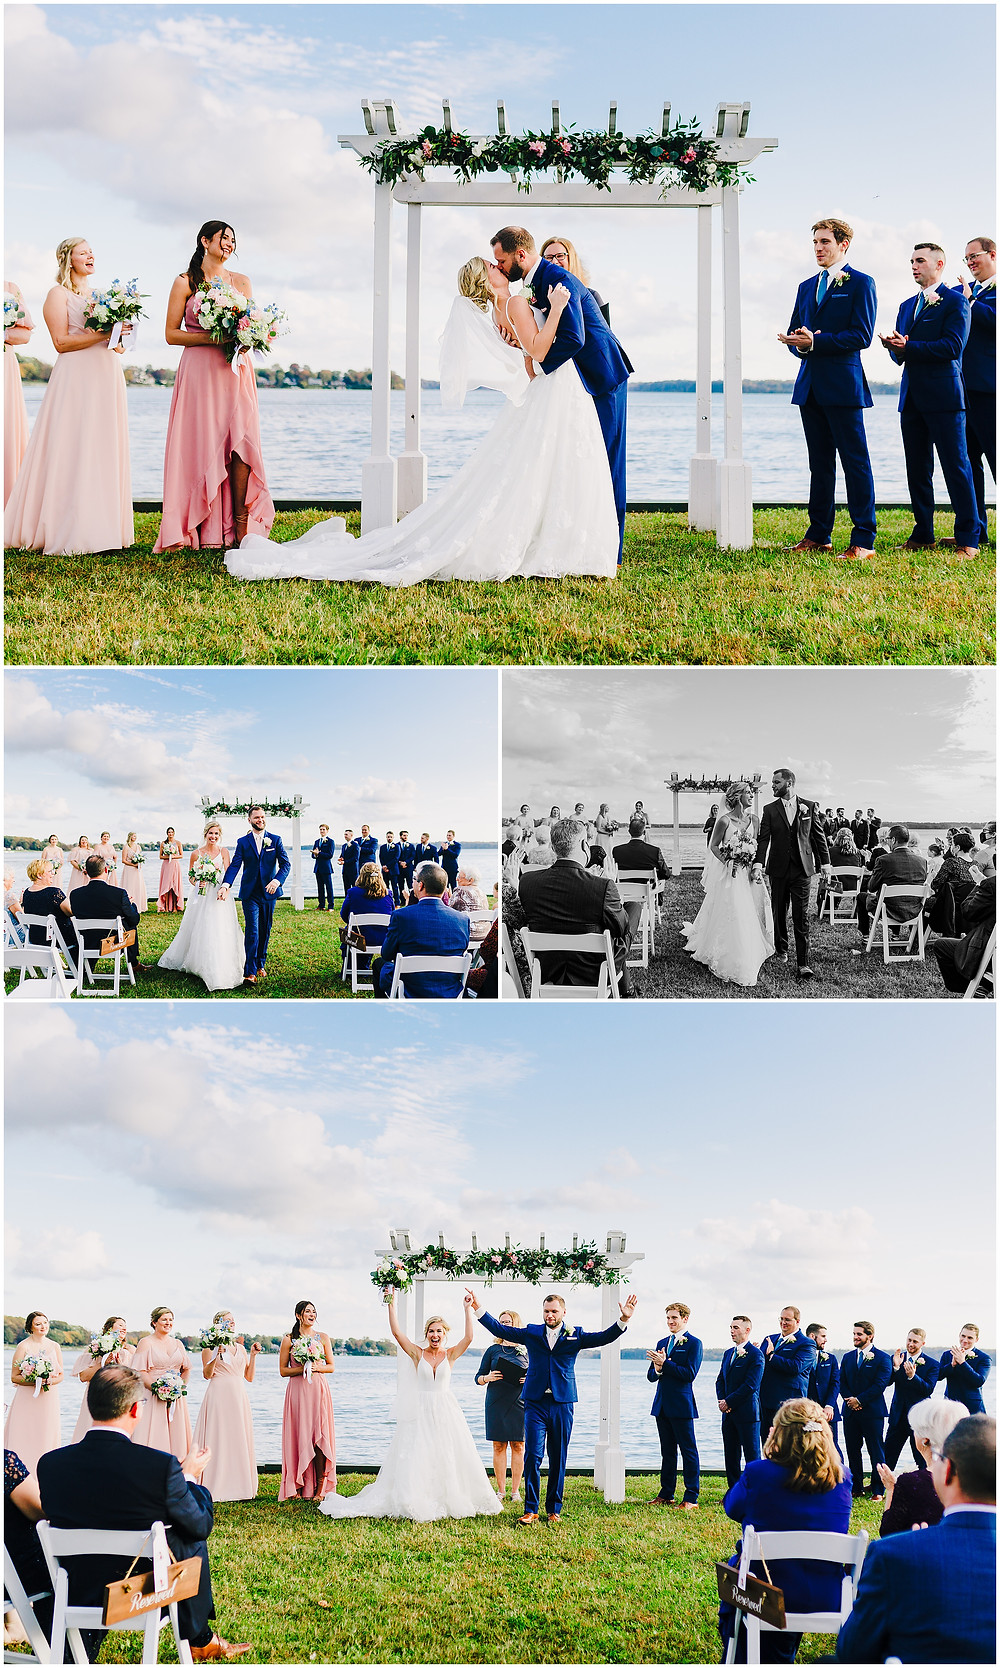 Sunset ceremony at Bohemia Overlook beach venue wedding, baltimore wedding photographer